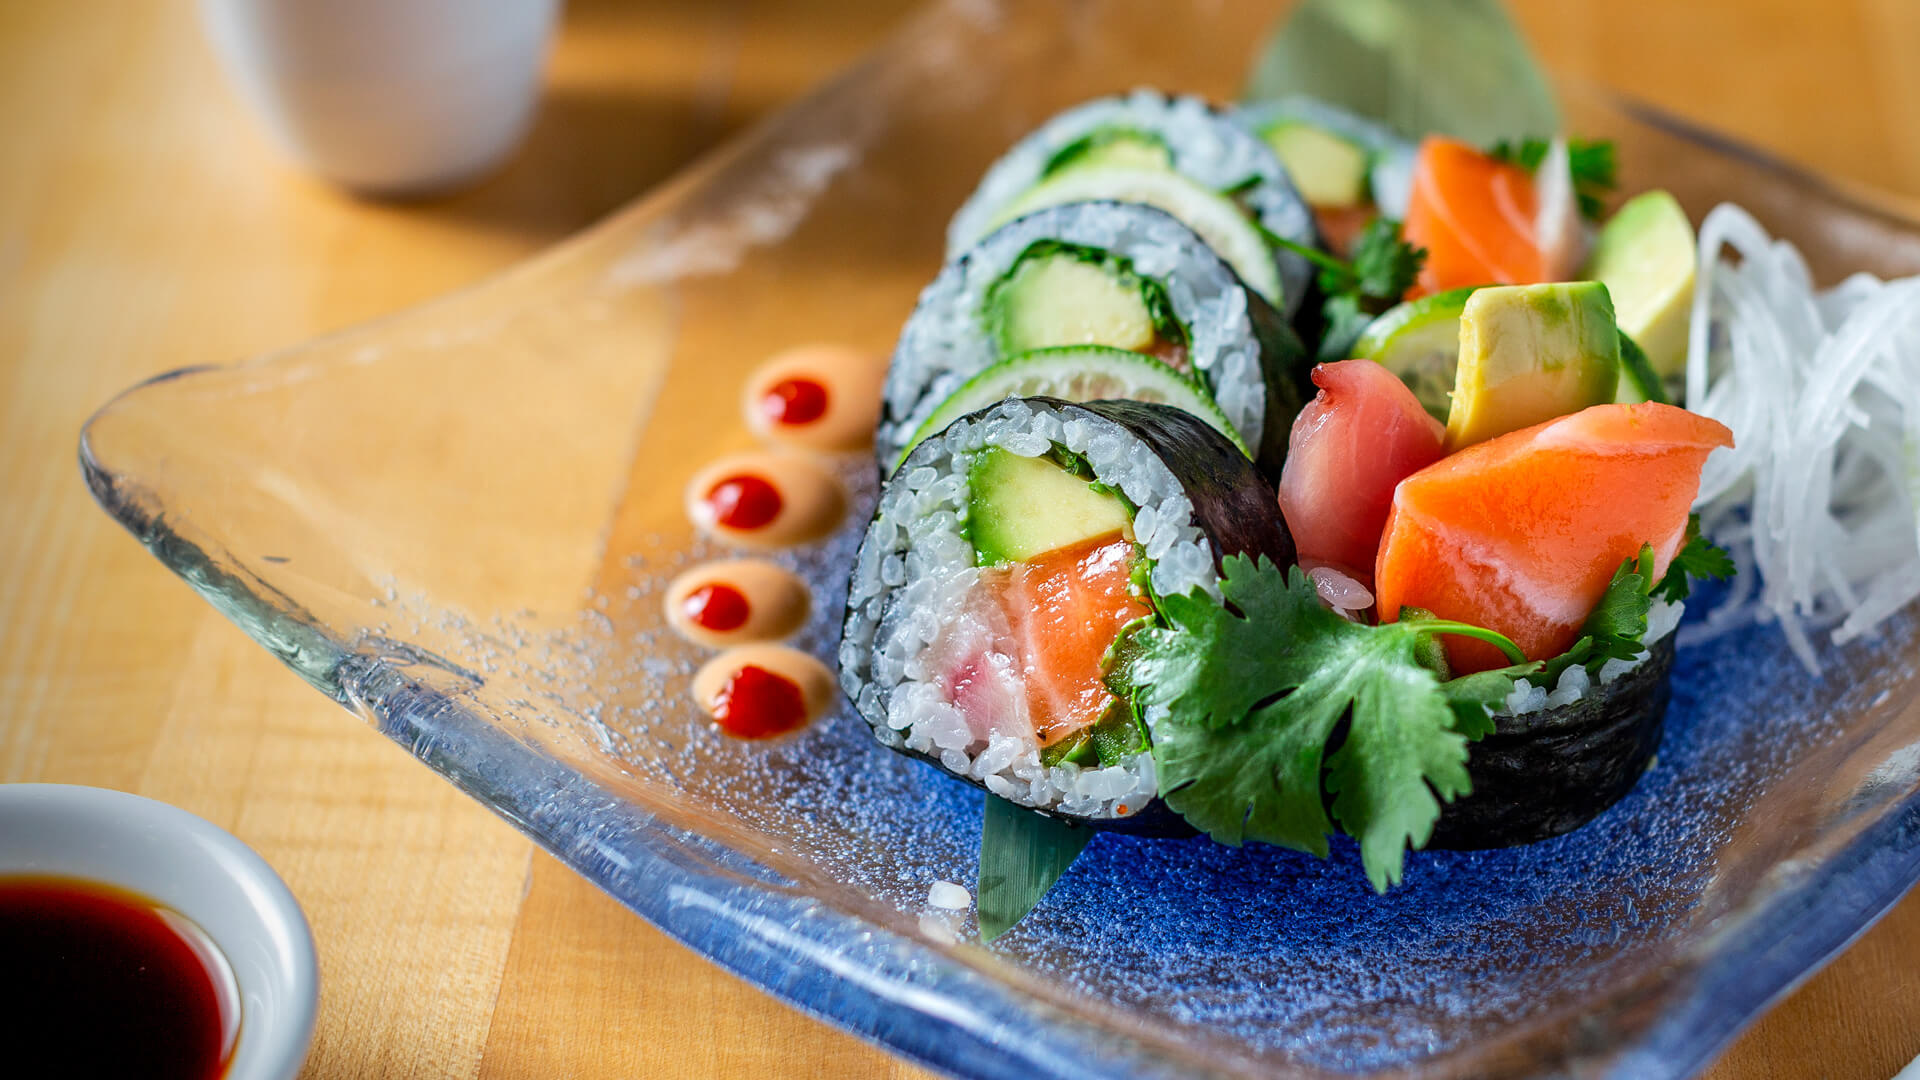 Nori Sushi - in Wicker Park, Lincoln Park and Edgewater